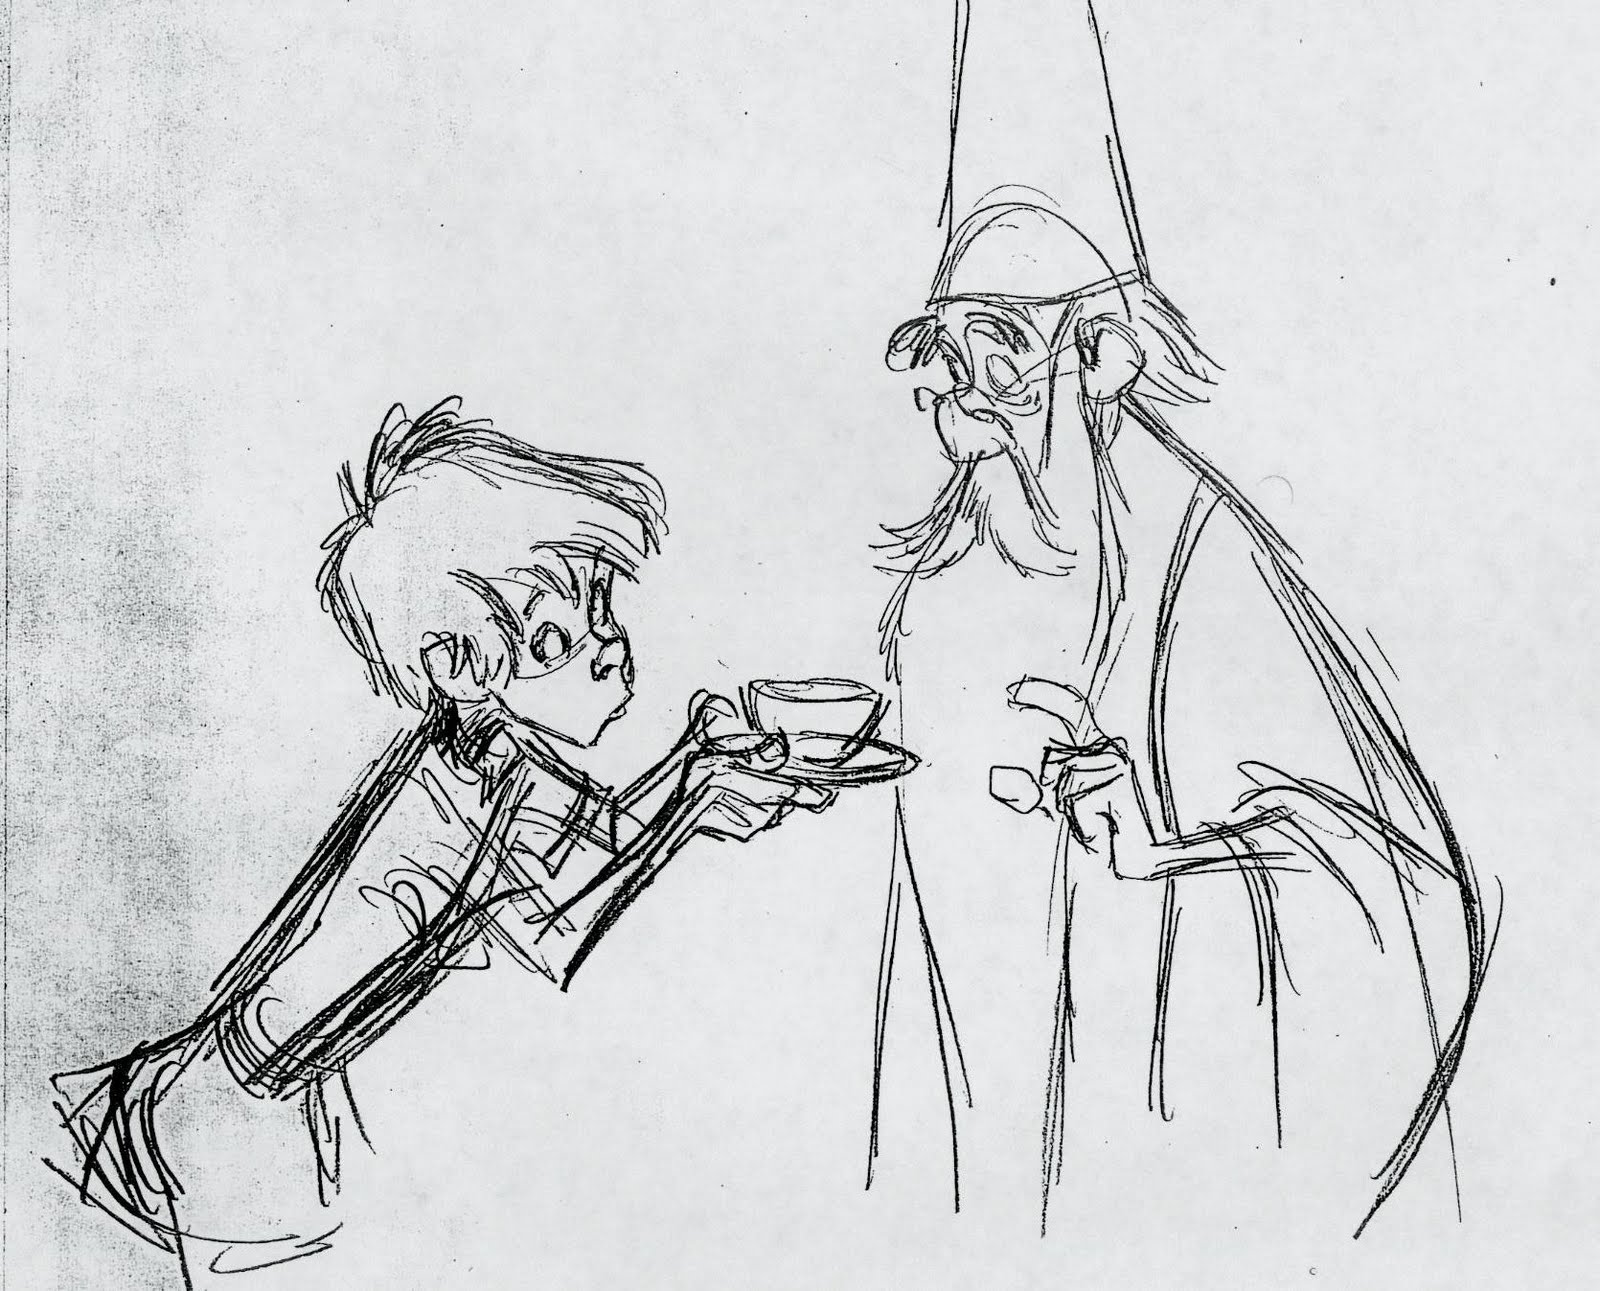 an analysis of kays rough end in the movie the sword in the stone In search for a sword for kay to use in a tournament toward the end of the film,  arthur pulls the sword from the stone, giving him the new title of king of britain.